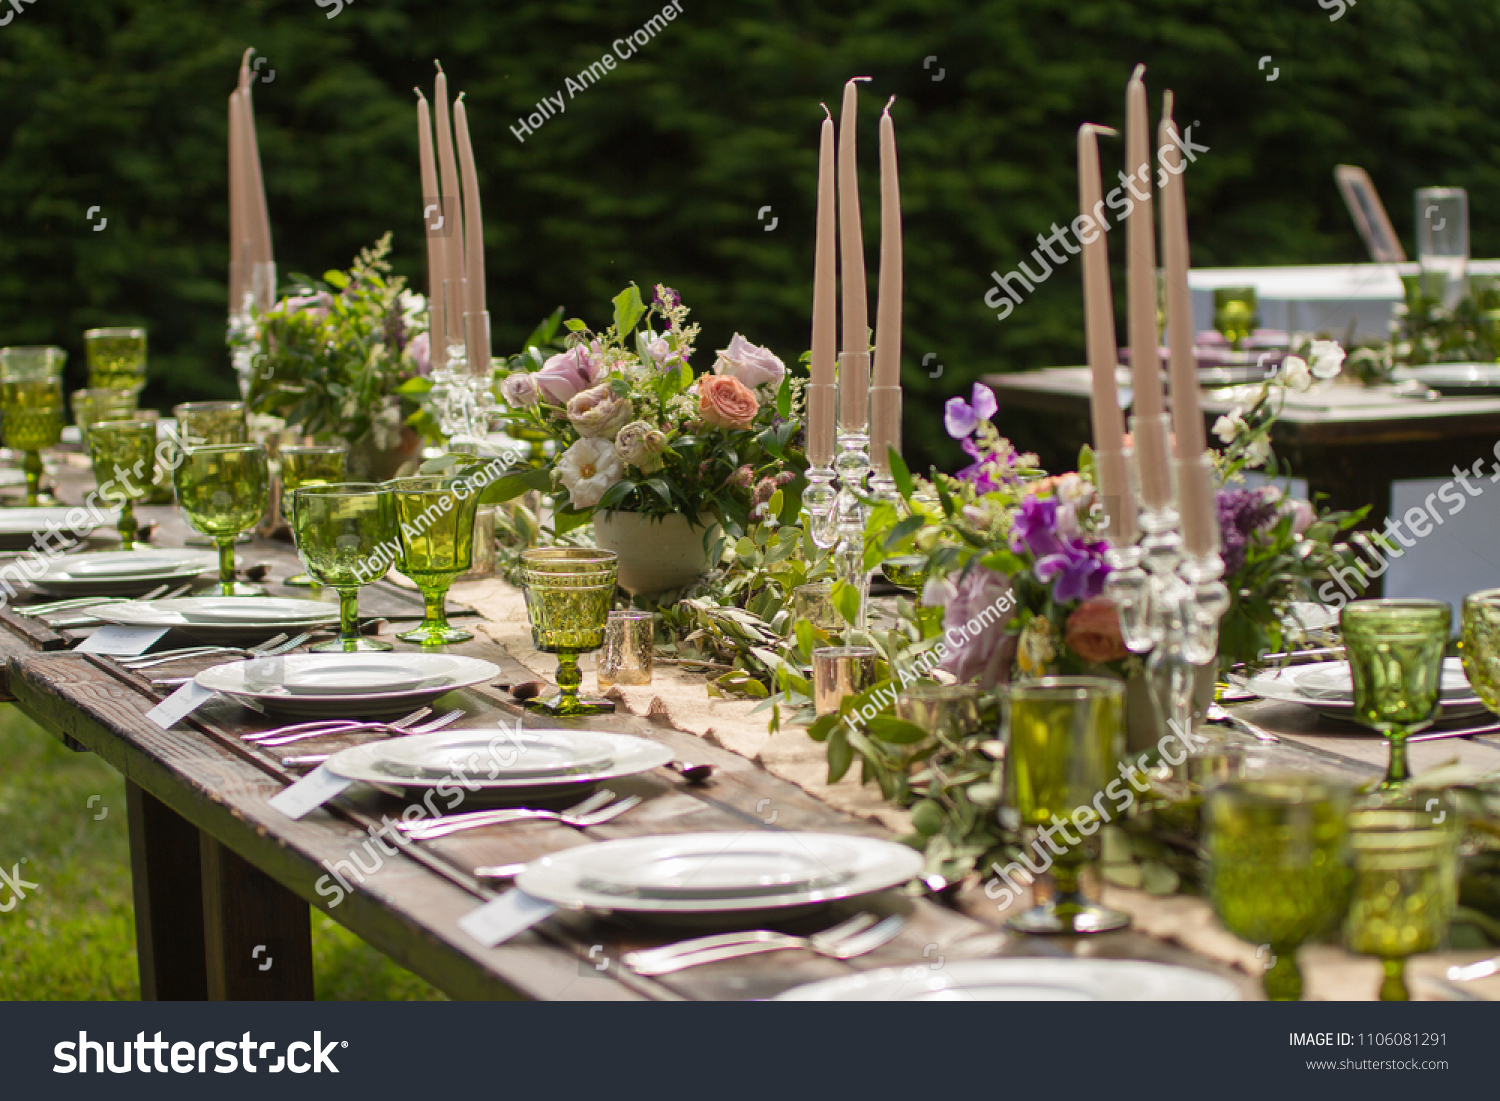 Rustic Wedding Decor Pink Peach Purple | Food and Drink Stock Image  1106081291